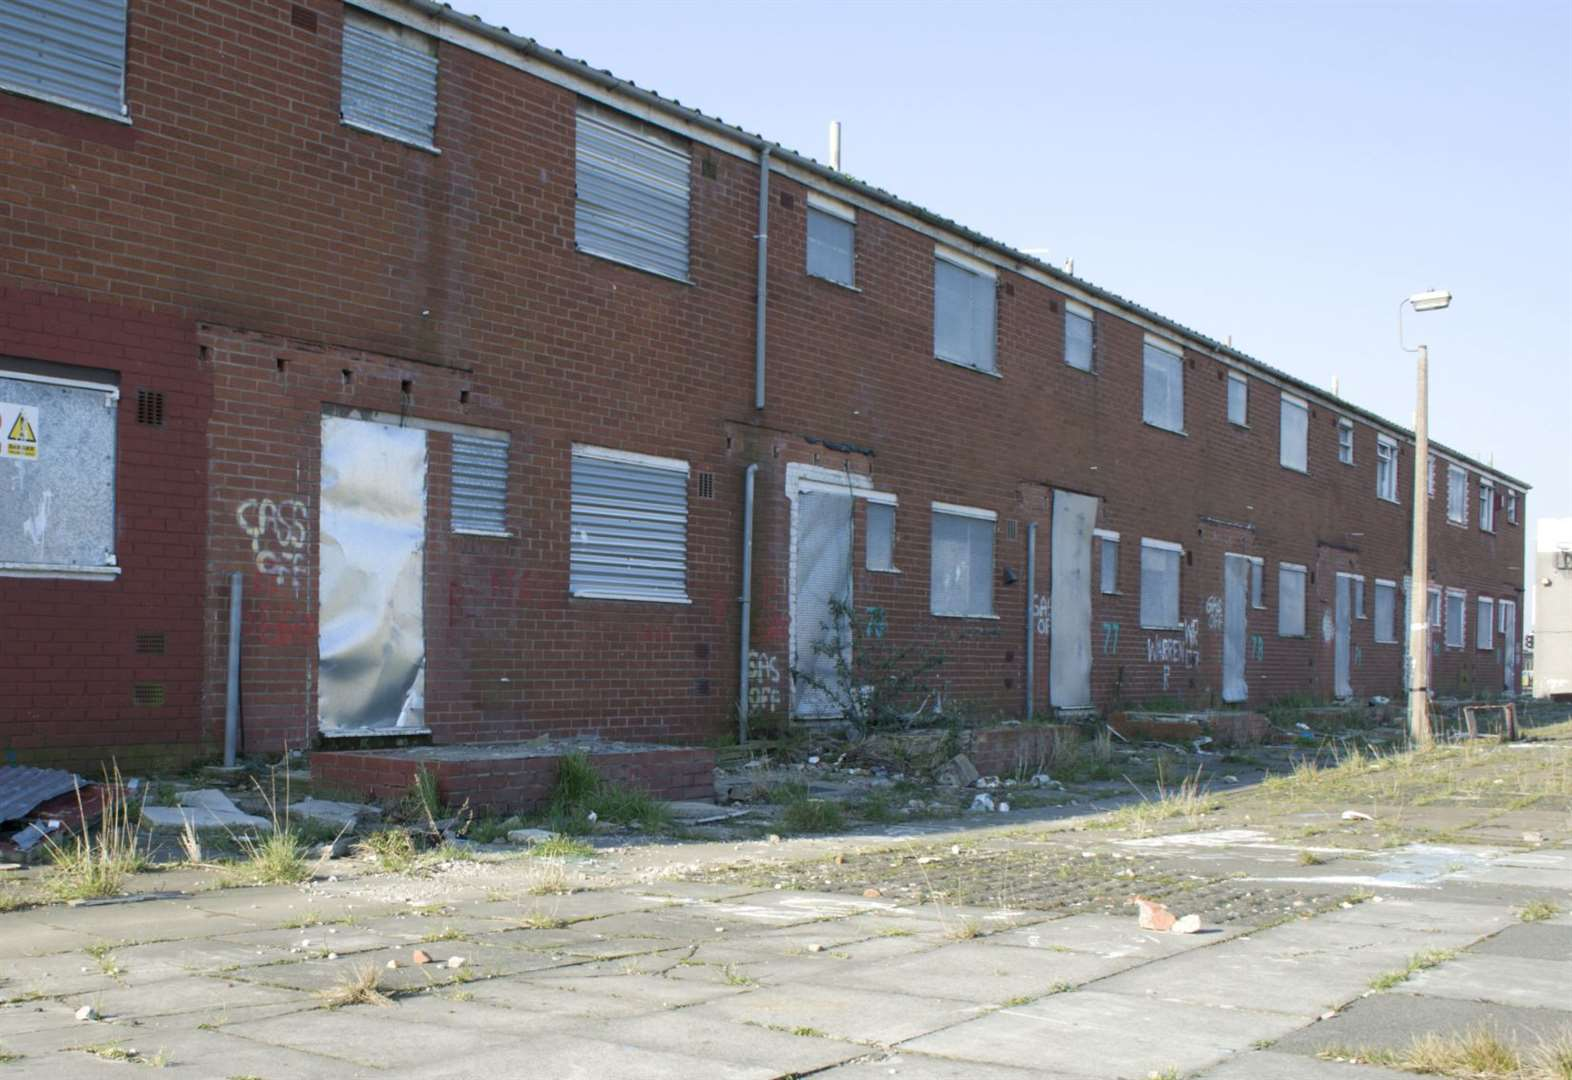 More than 6,000 homes left empty